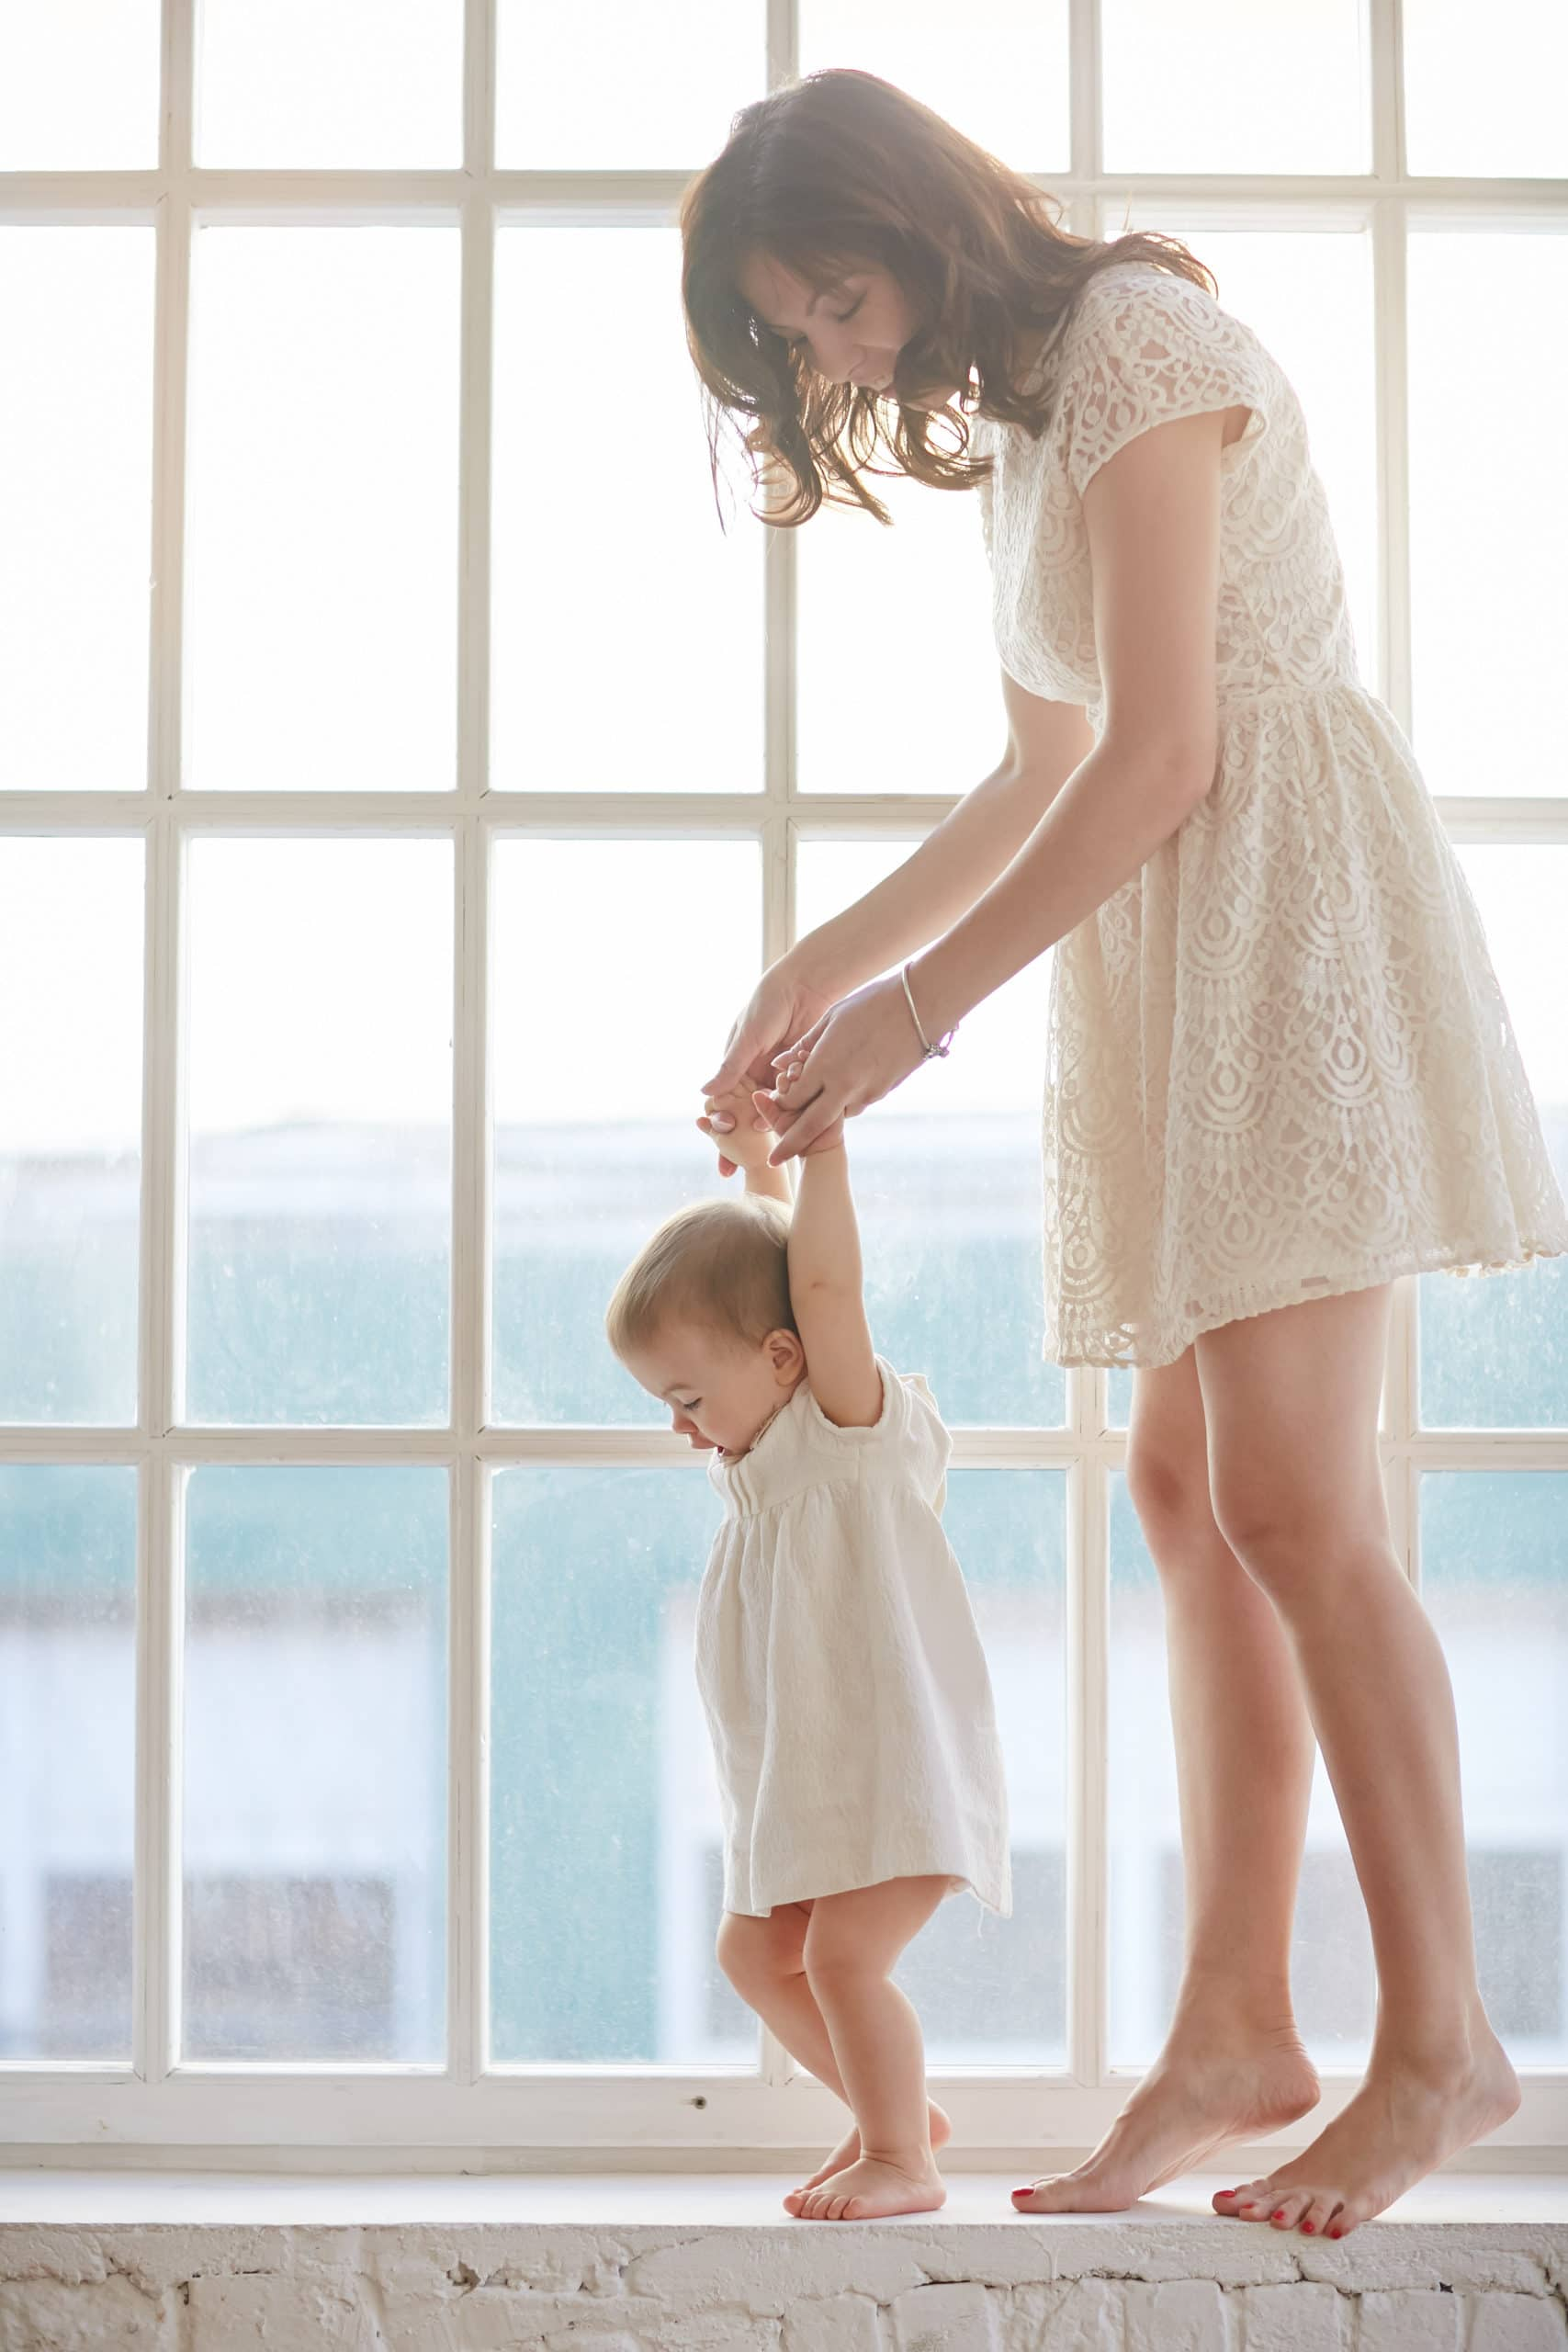 Baby taking first steps with mother's help at home. Baby leaning walking with mother